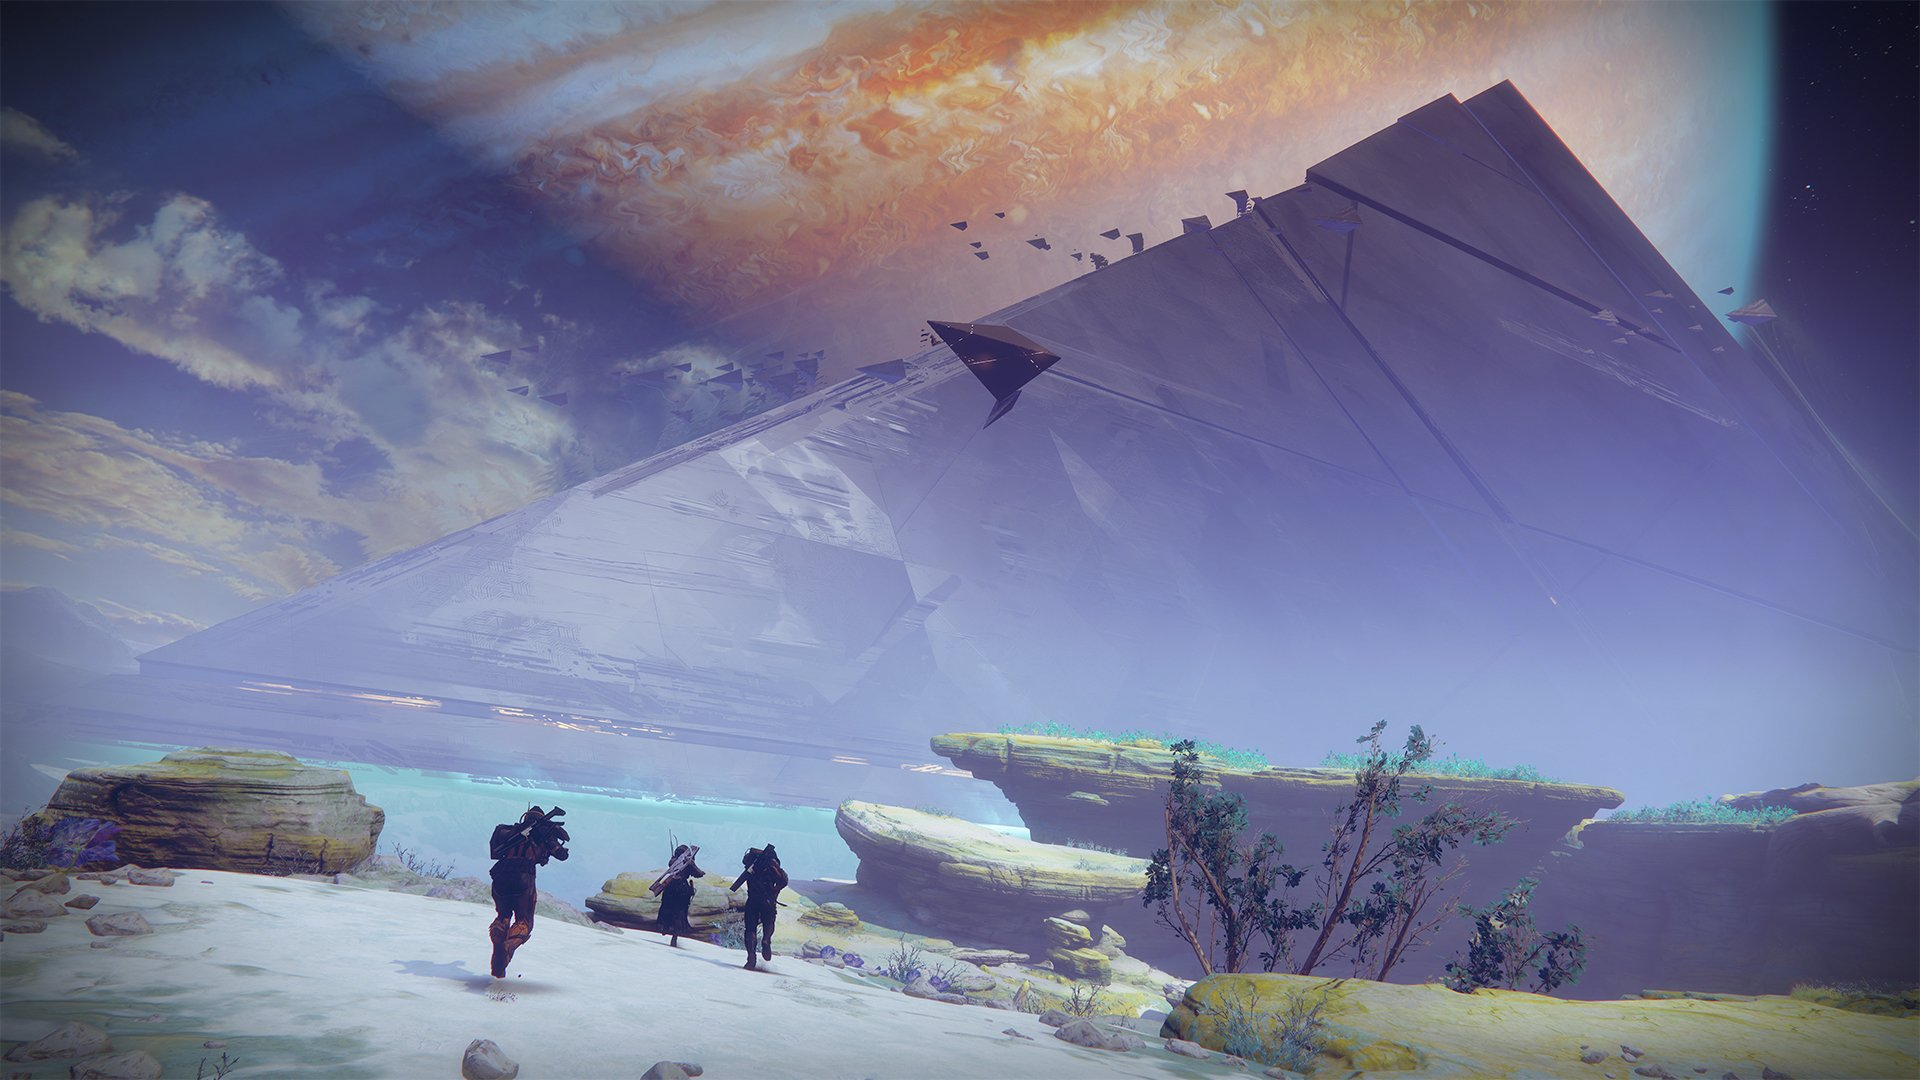 How to get Altered Element in Destiny 2 Season of Arrivals